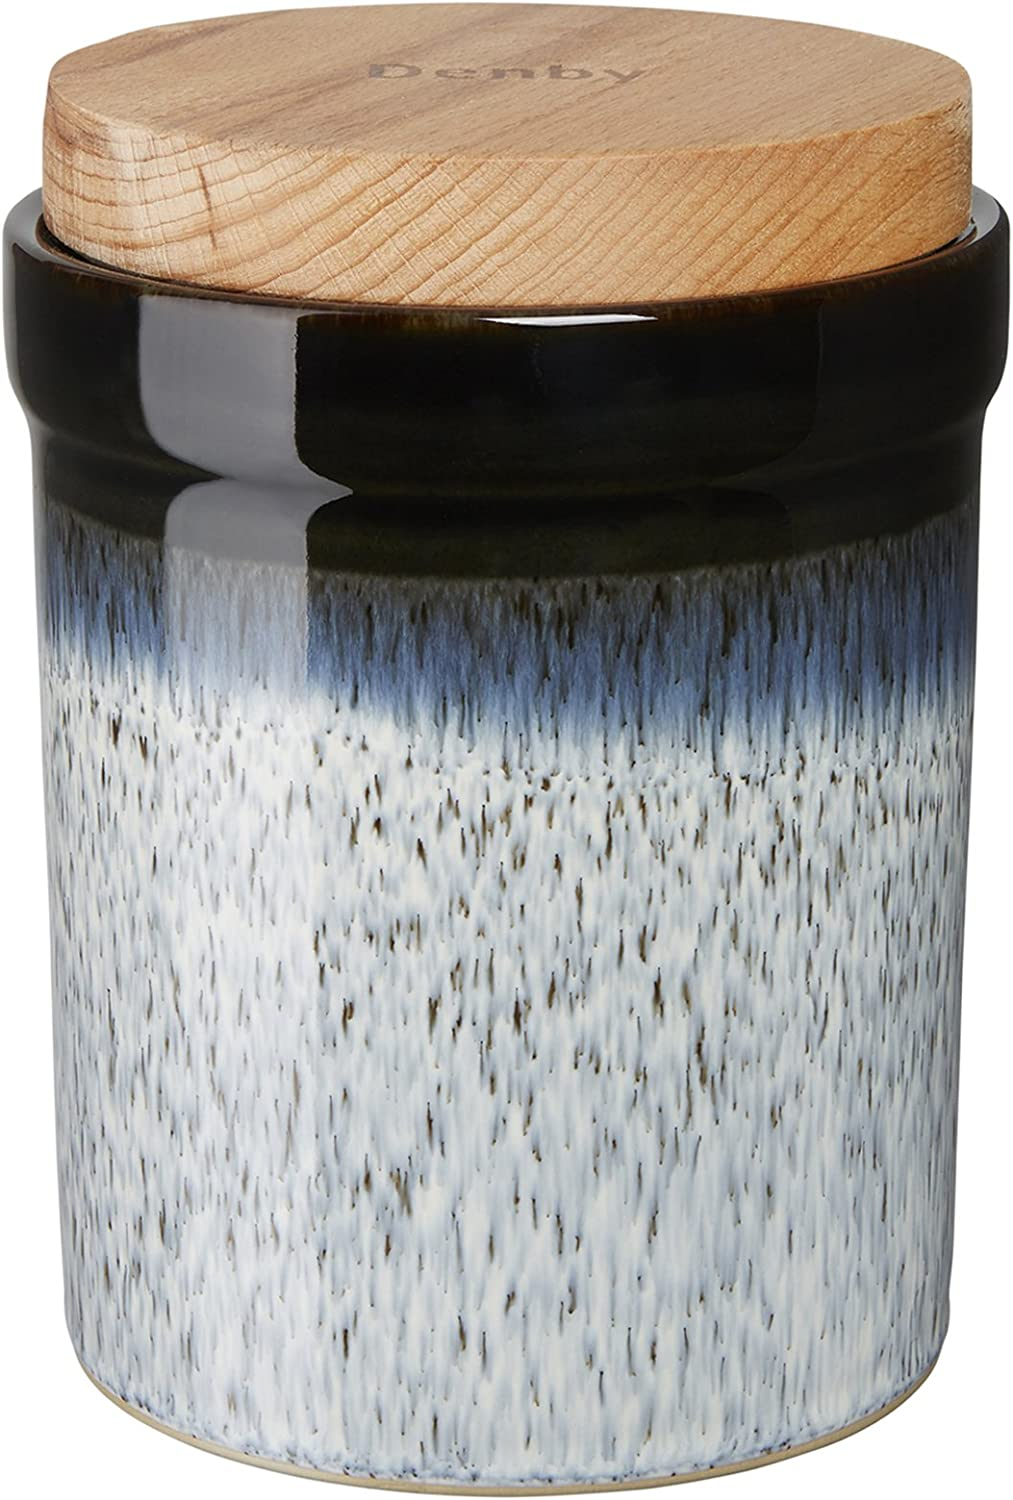 Denby USA Halo Storage Jar, Speckle